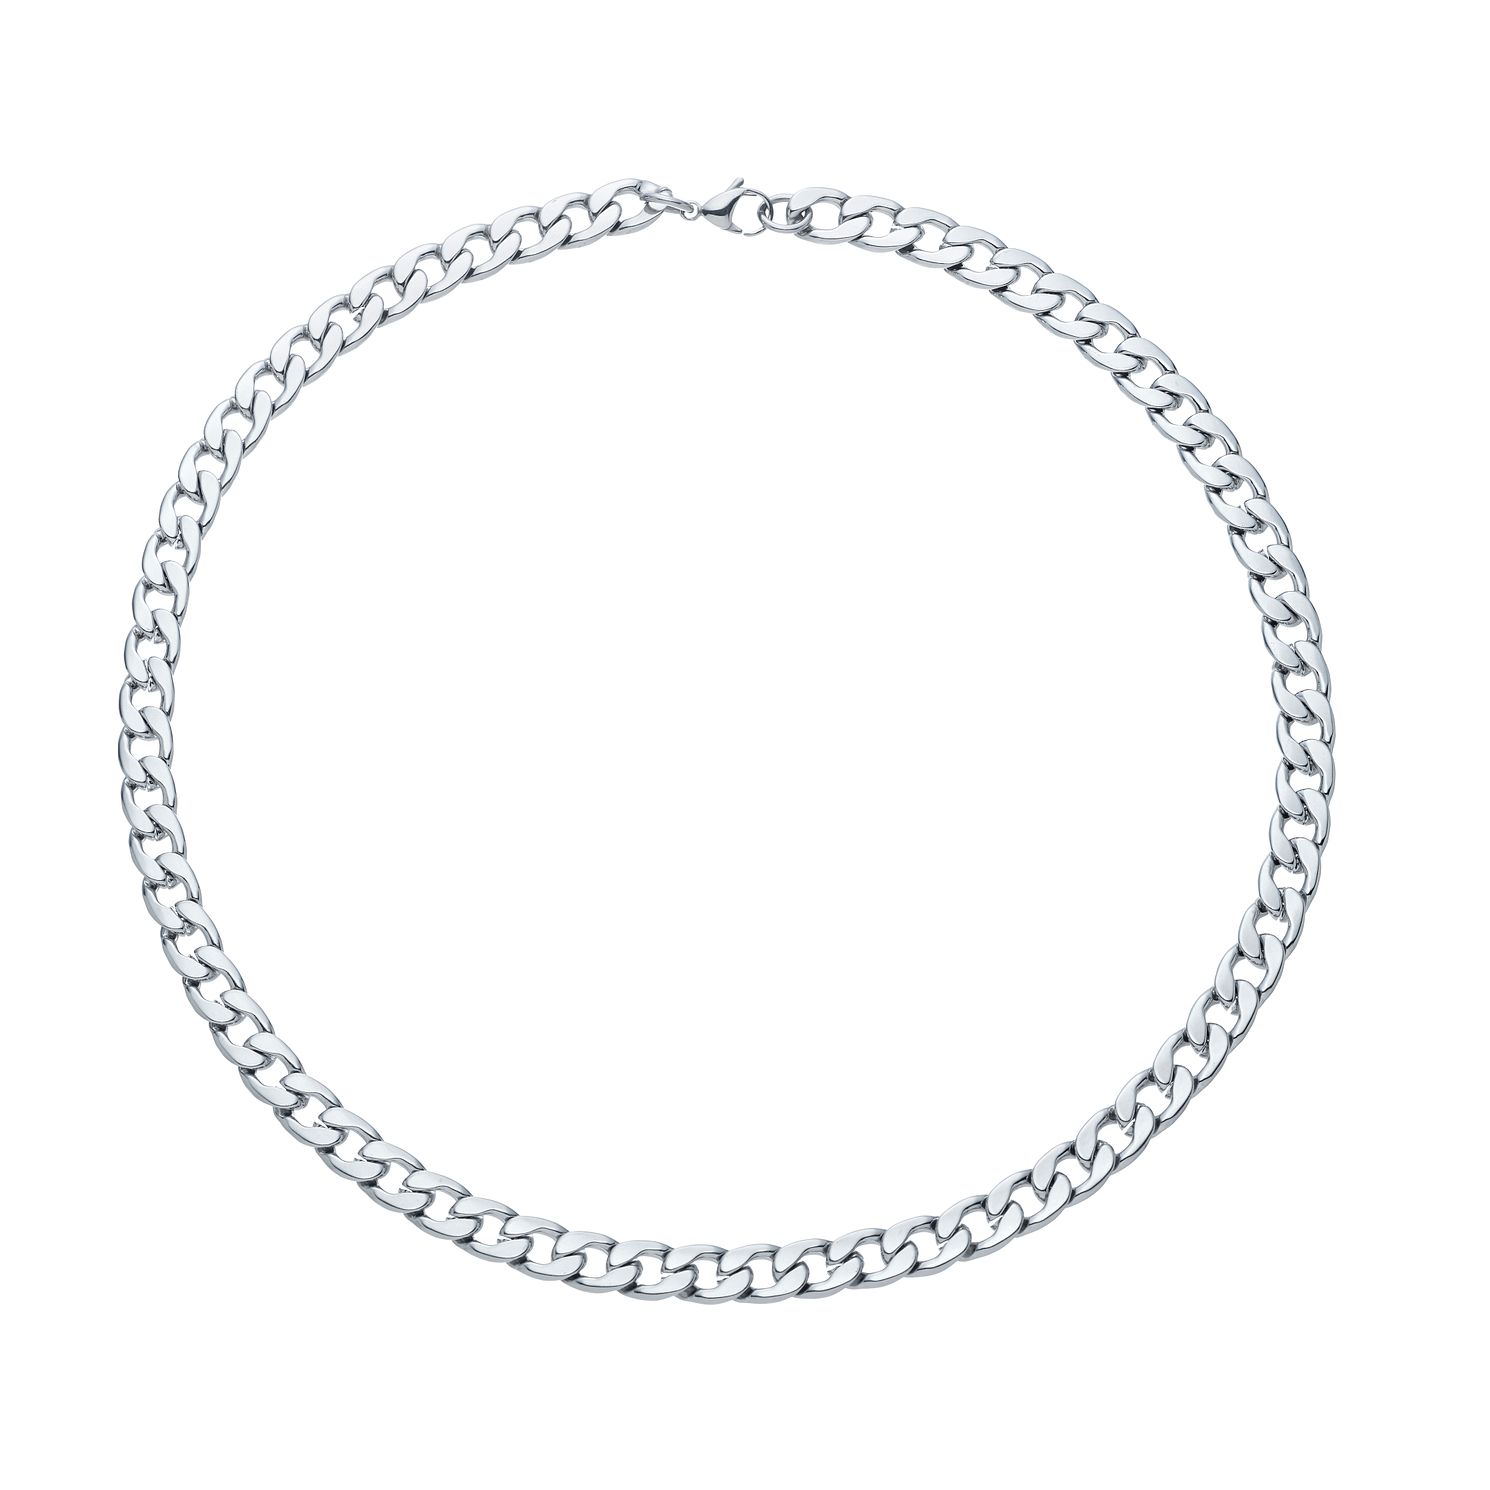 Stainless Steel 22 inches Men's Wide Curb Chain Necklace - Product number 3945553